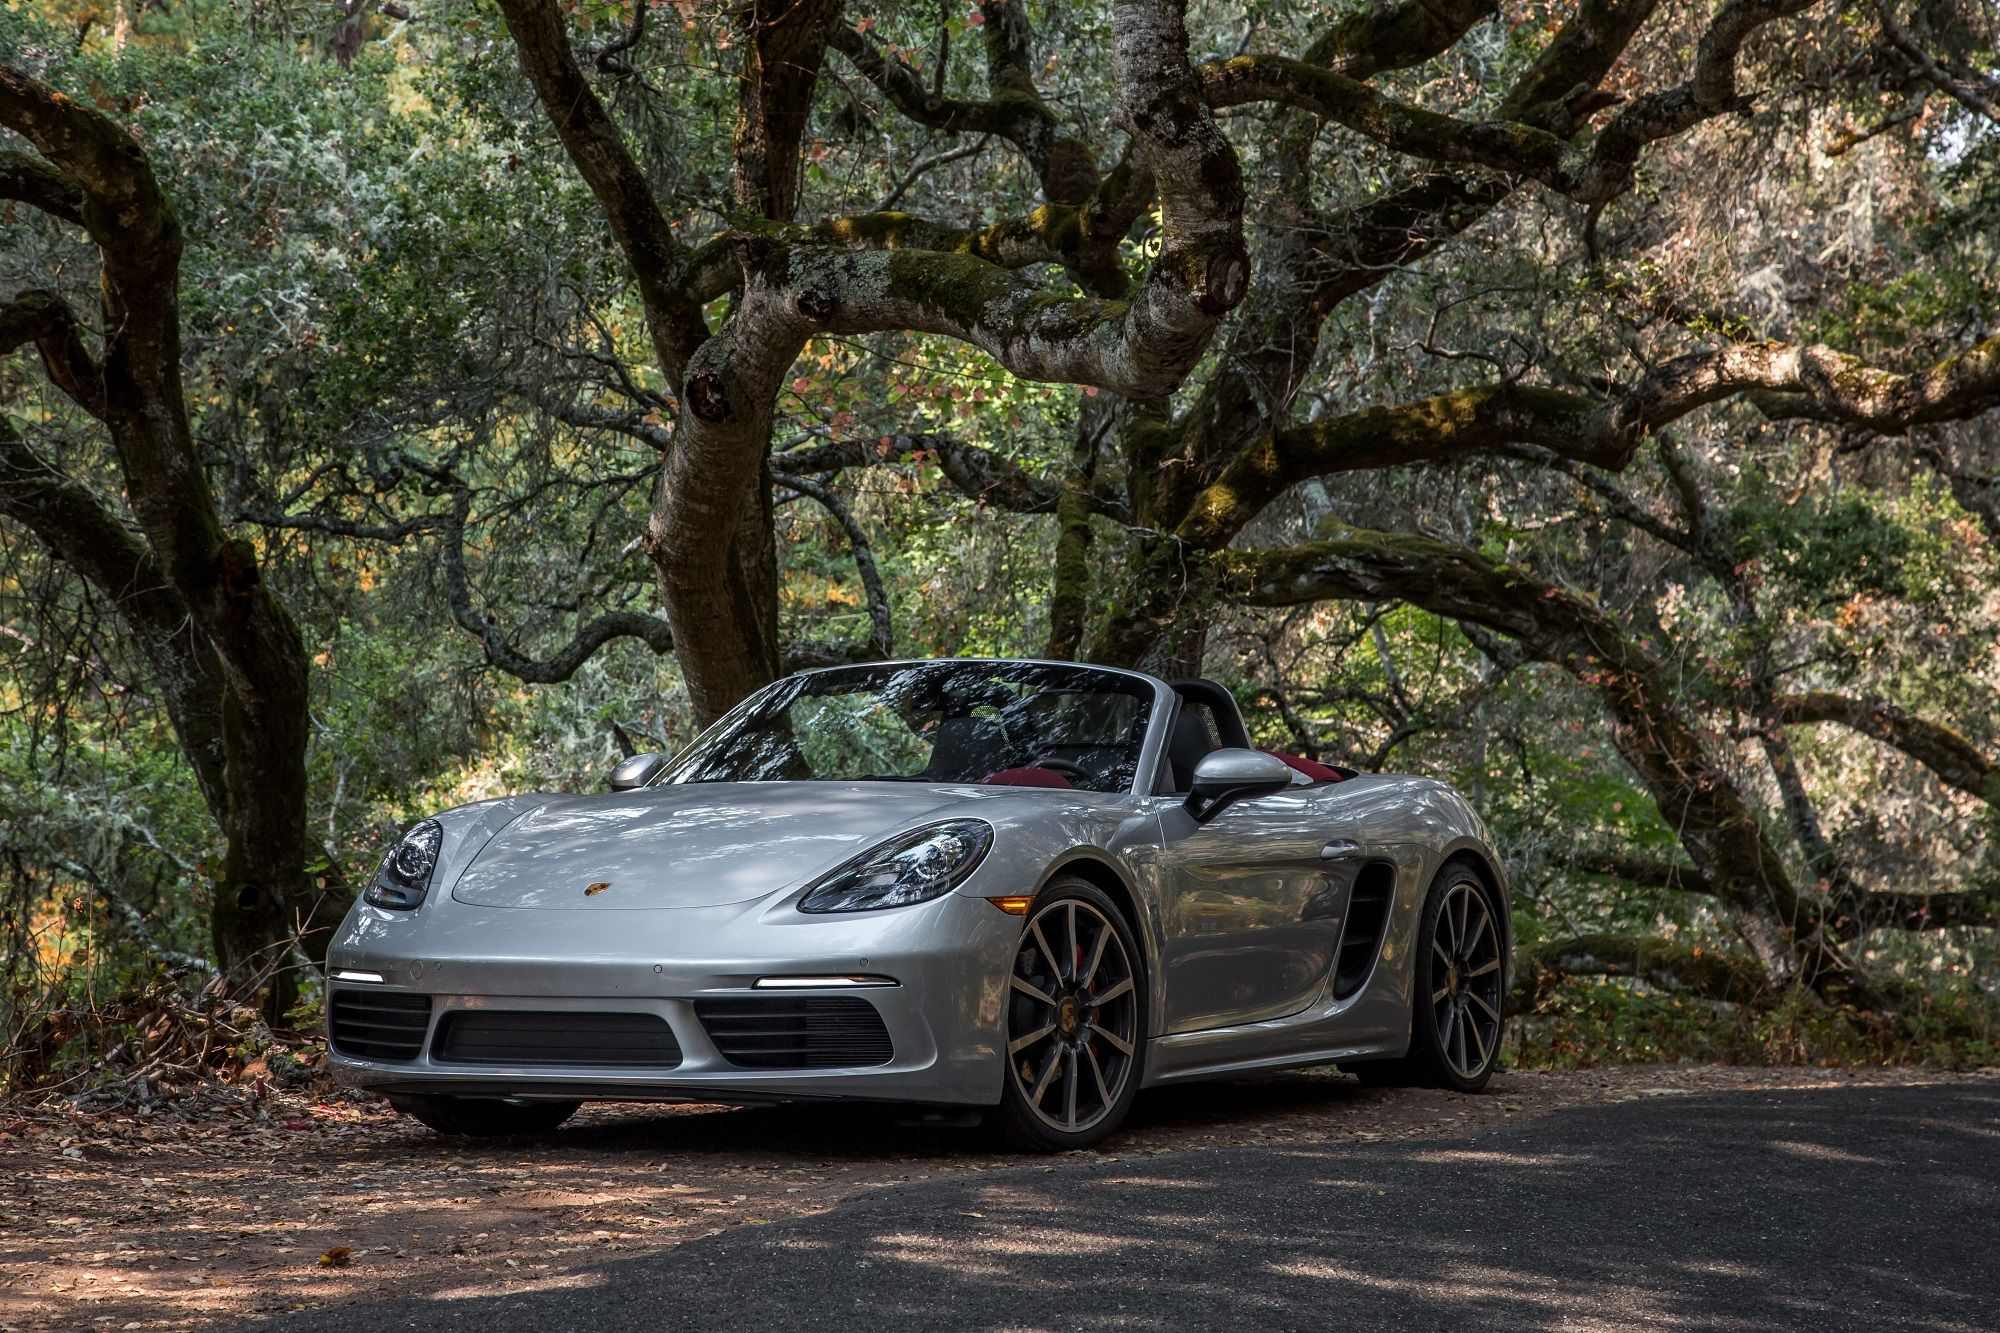 The Porsche 718 Boxster